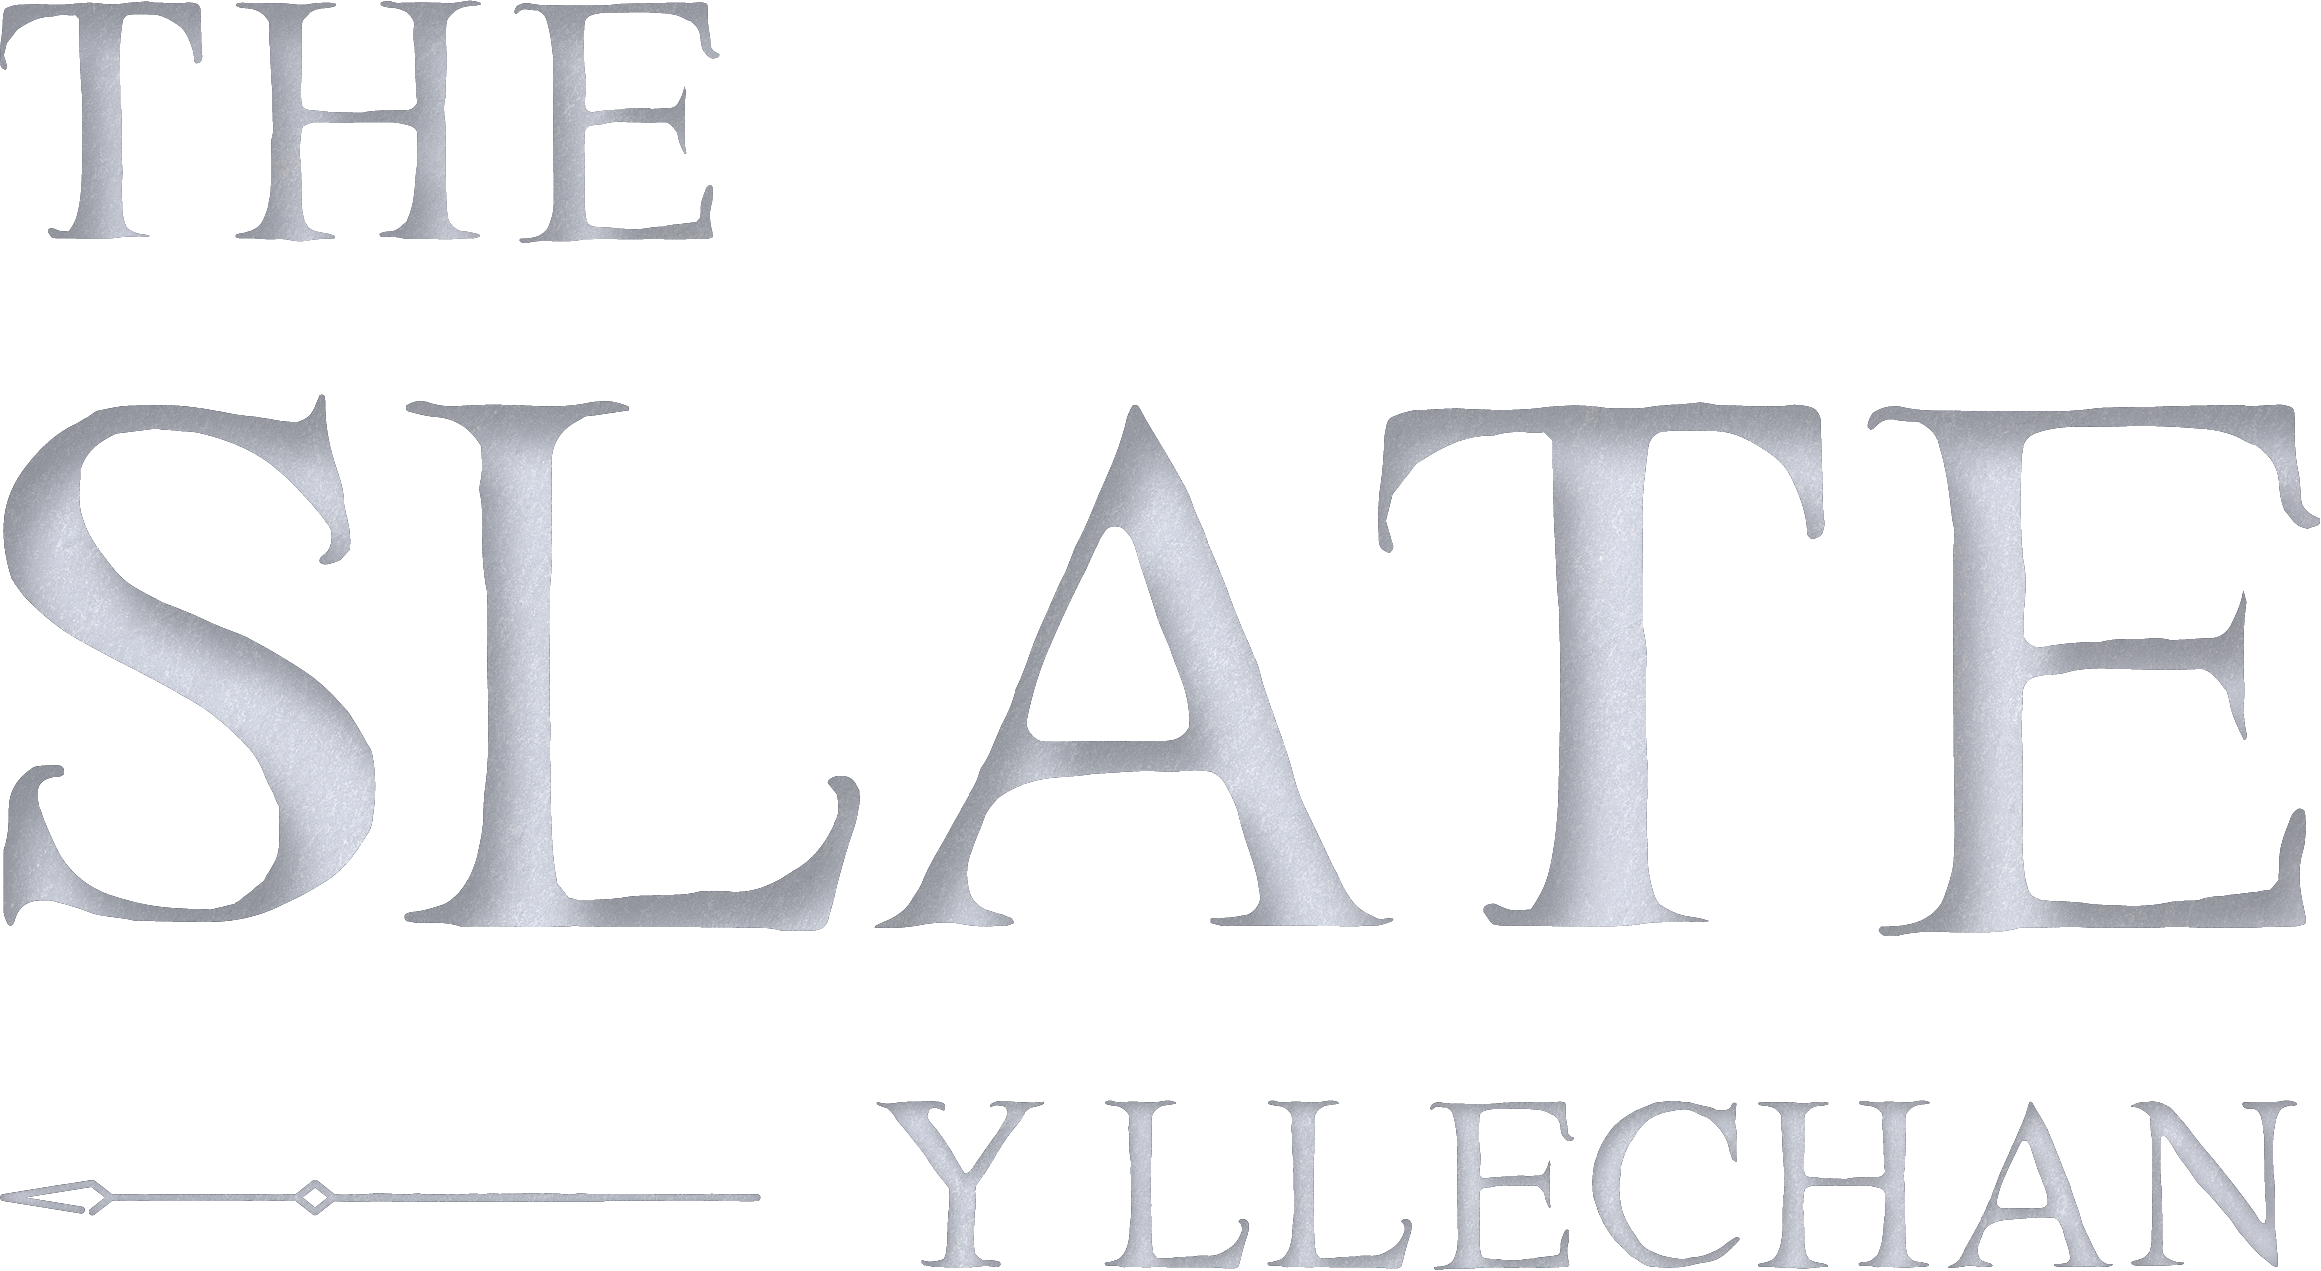 Logo of The Slate